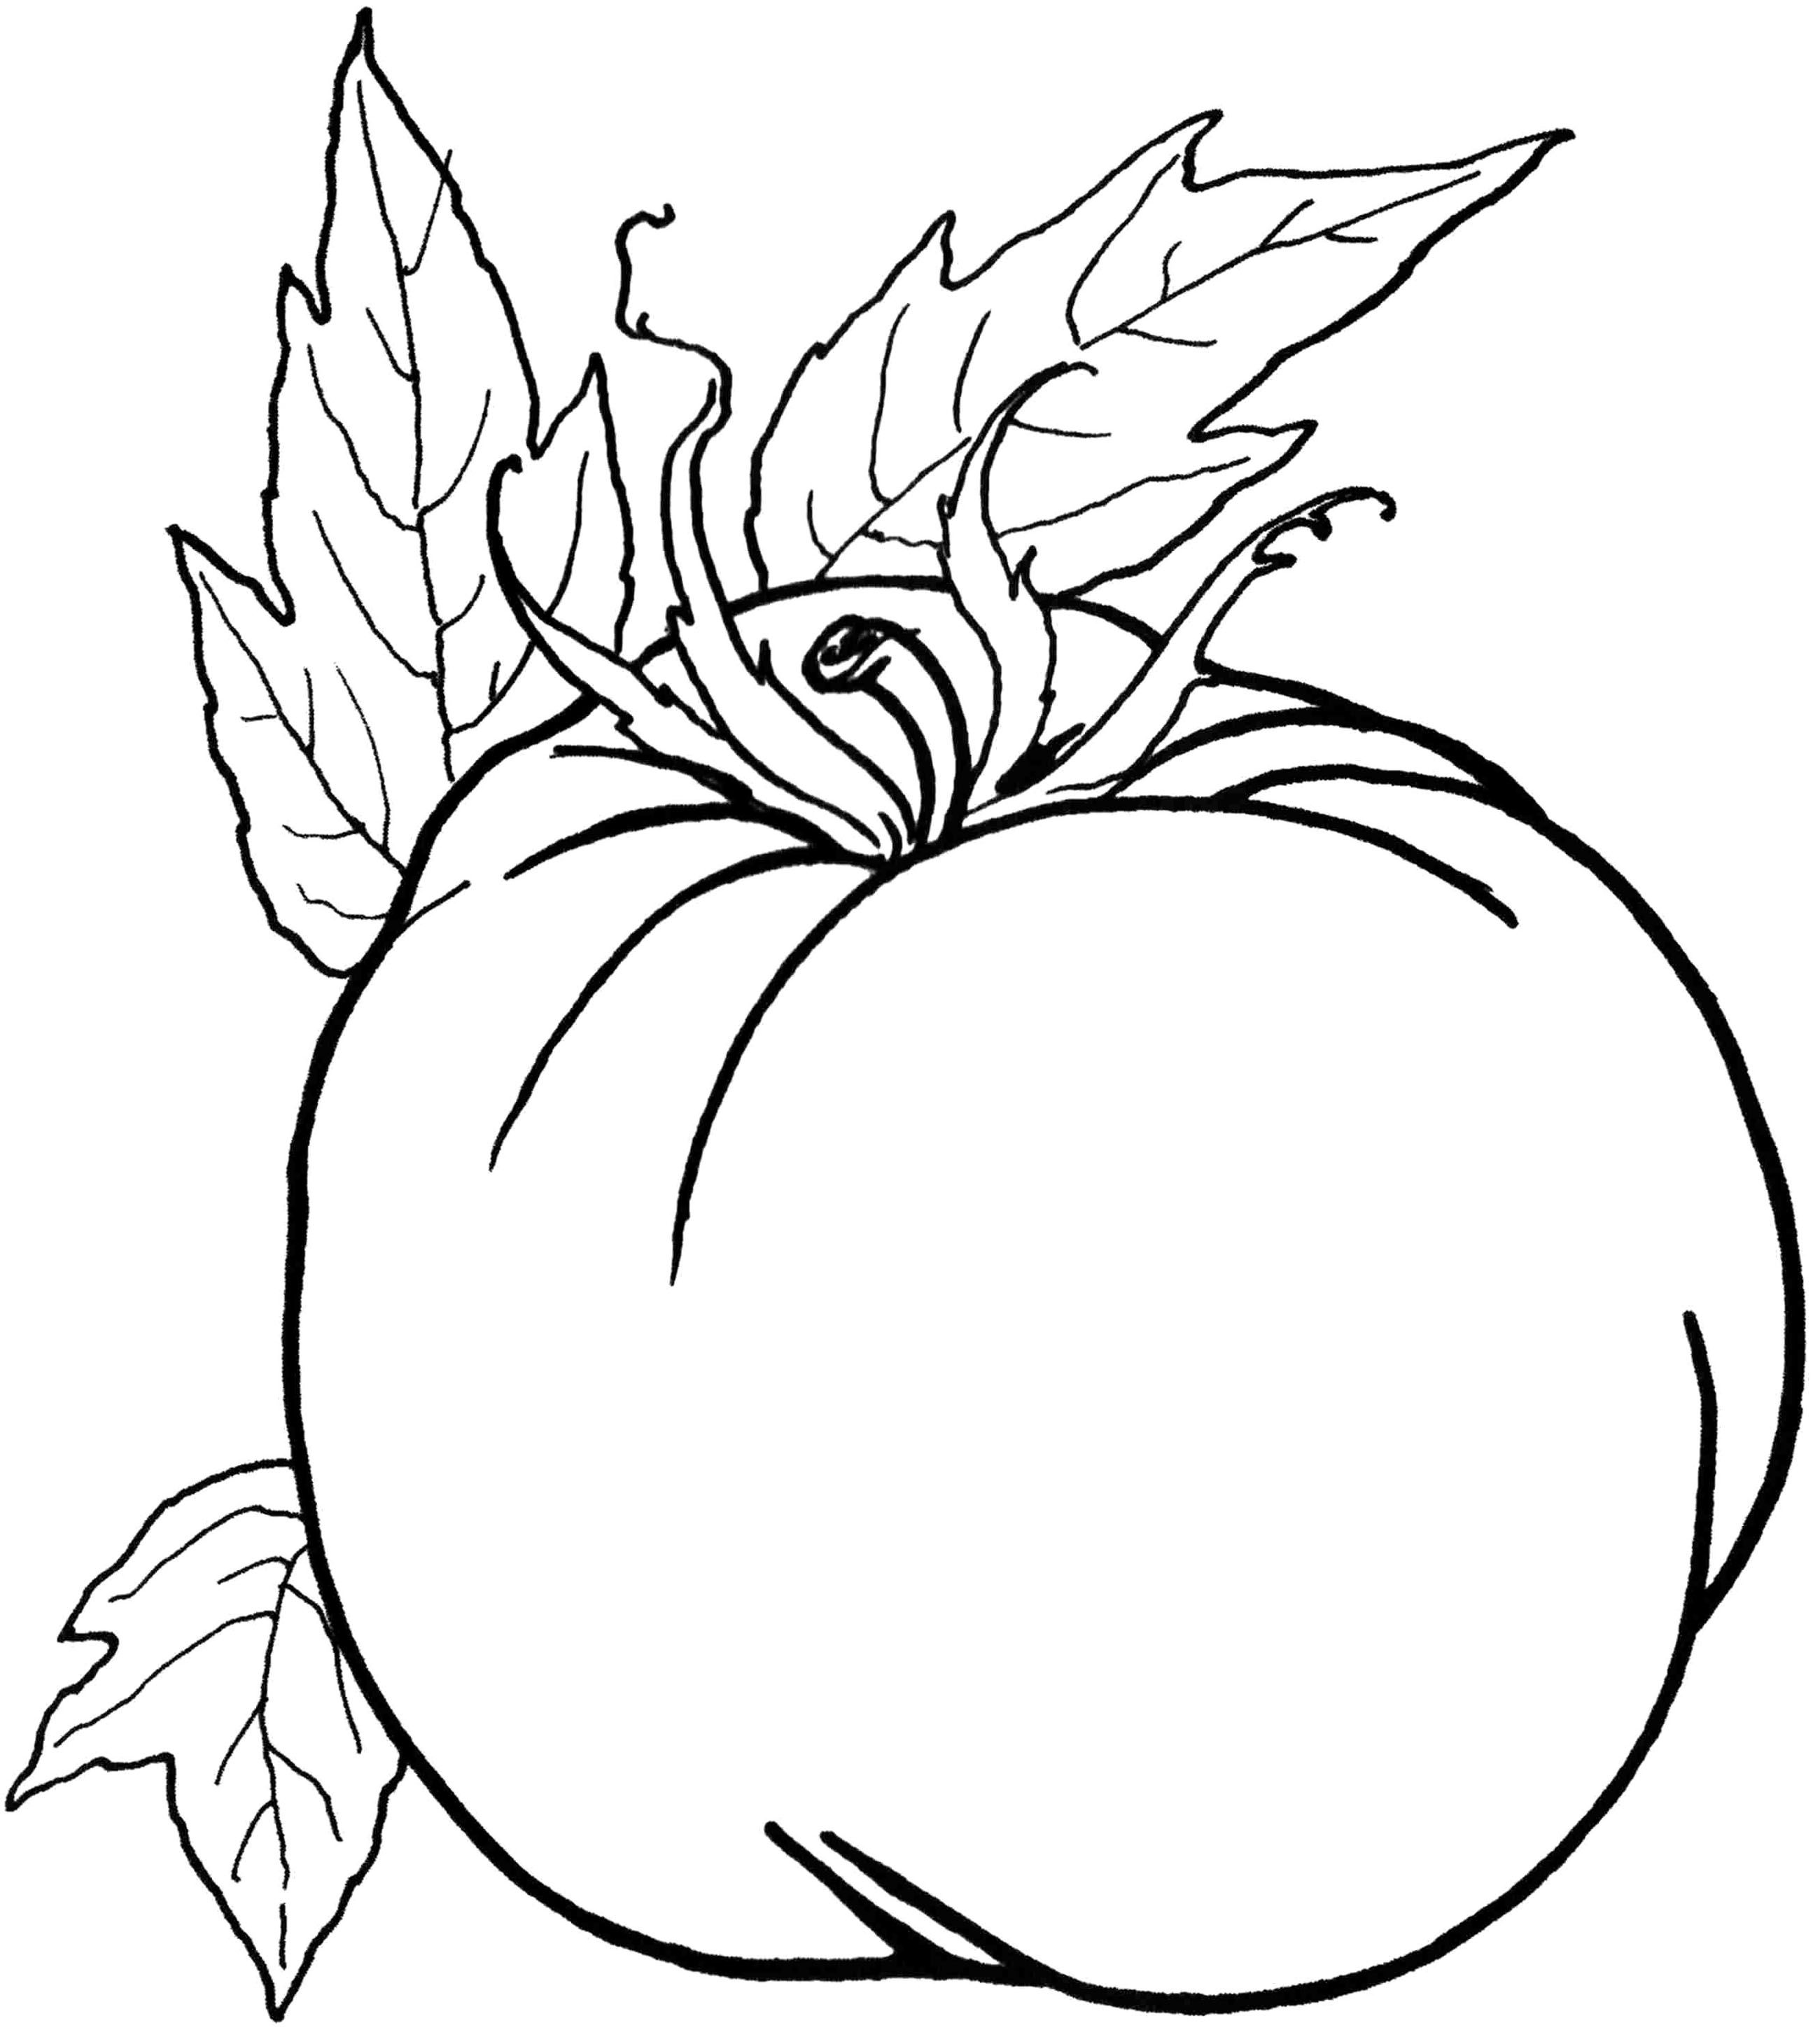 Pumpkin Vegetables Healthy Food Coloring Pages | fall coloring pages ...